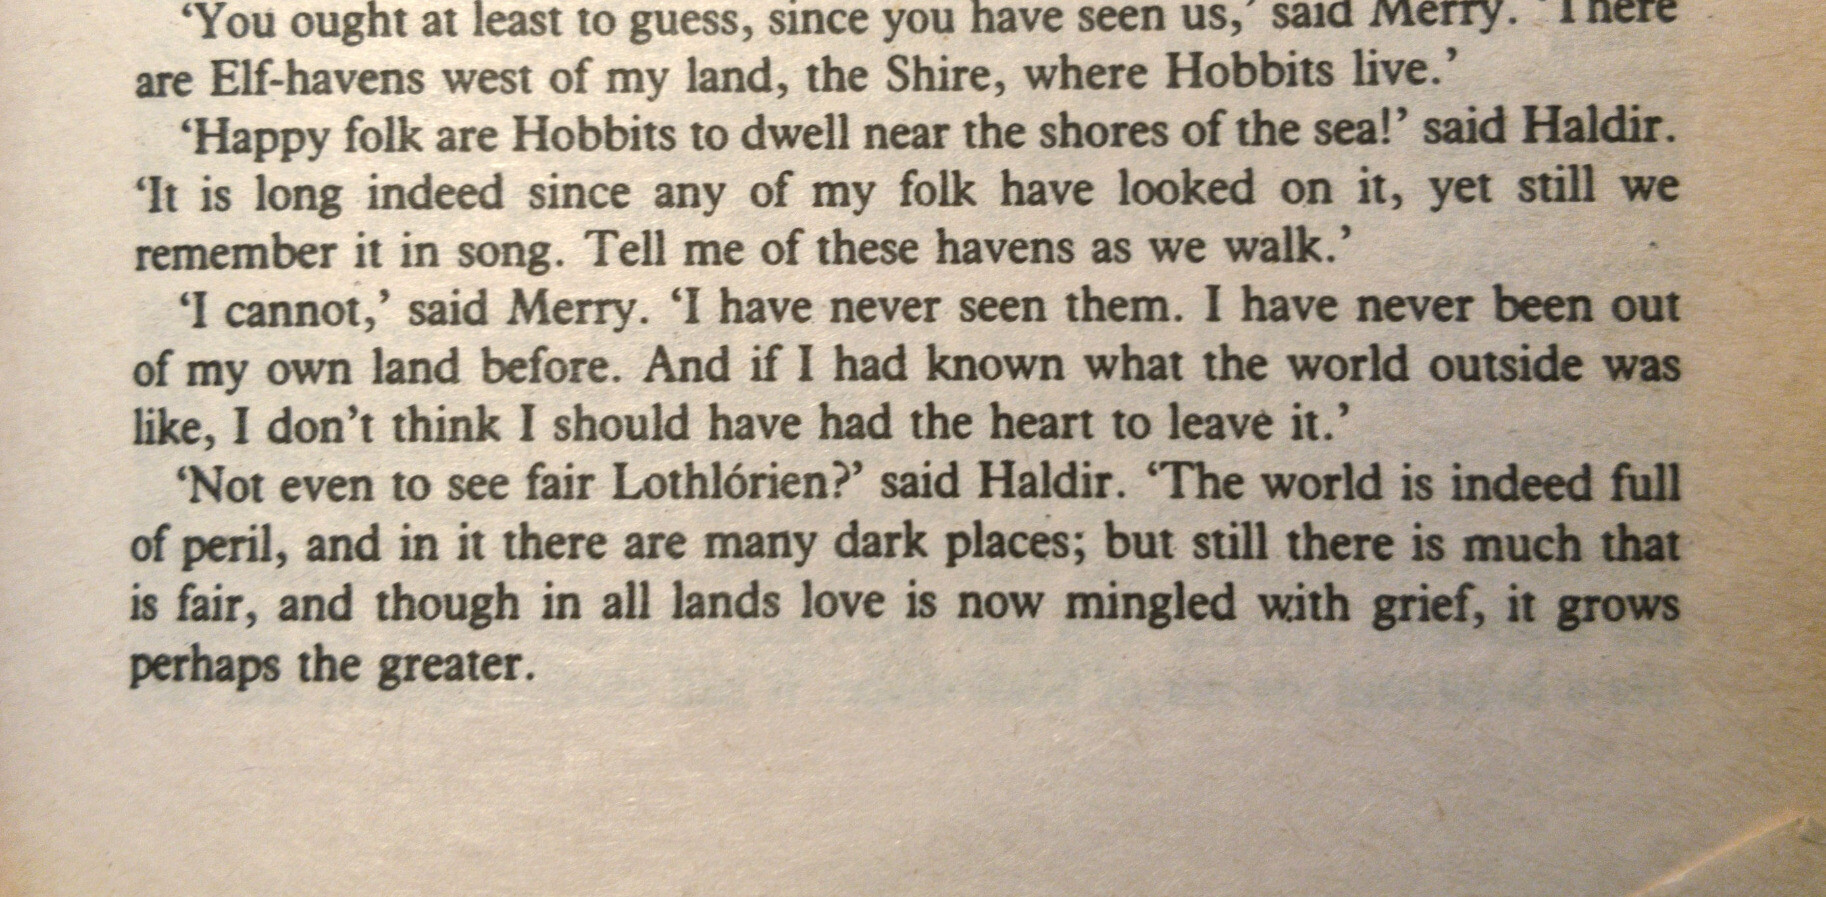 """[Merry:] """"I have never seen [the Havens]. I have never been out of my own land before. And if I had known what the world outside was like, I don't think I should have had the heart to leave it.""""<br>""""Not even to see fair Lothlórien?"""" said Haldir. """"The world is indeed full of peril, and in it there are many dark places; but still there is much that is fair, and though in all lands love is now mingled with grief, it grows perhaps the greater."""""""